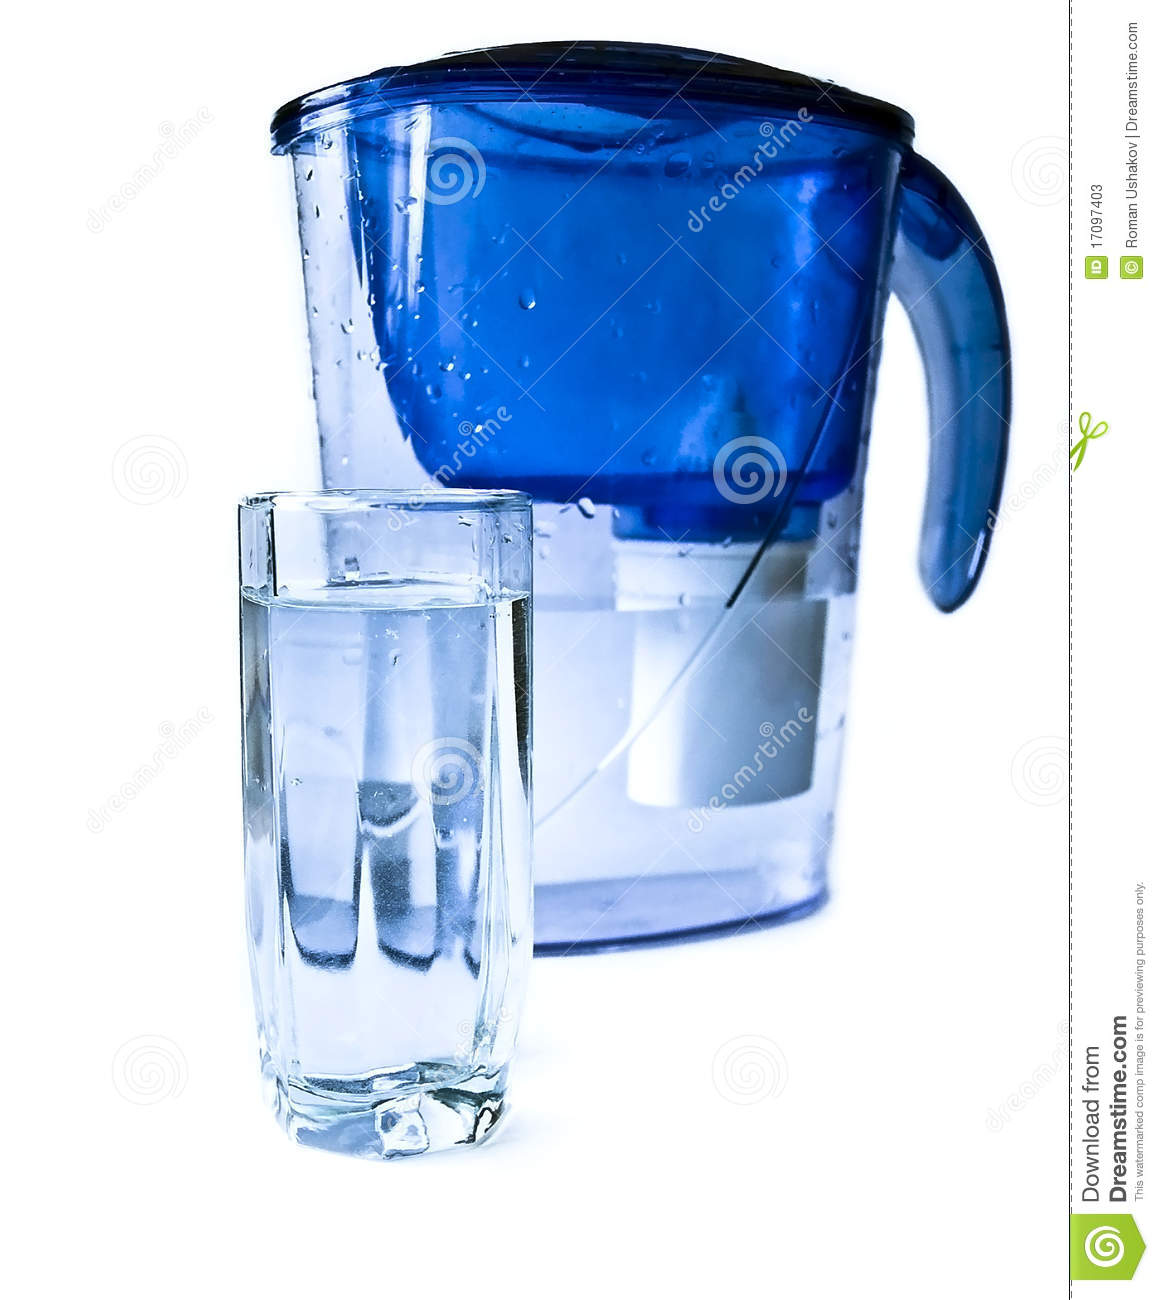 Filirt pitcher and glass of water stock photos image 17097403 - Glass filtered water pitcher ...